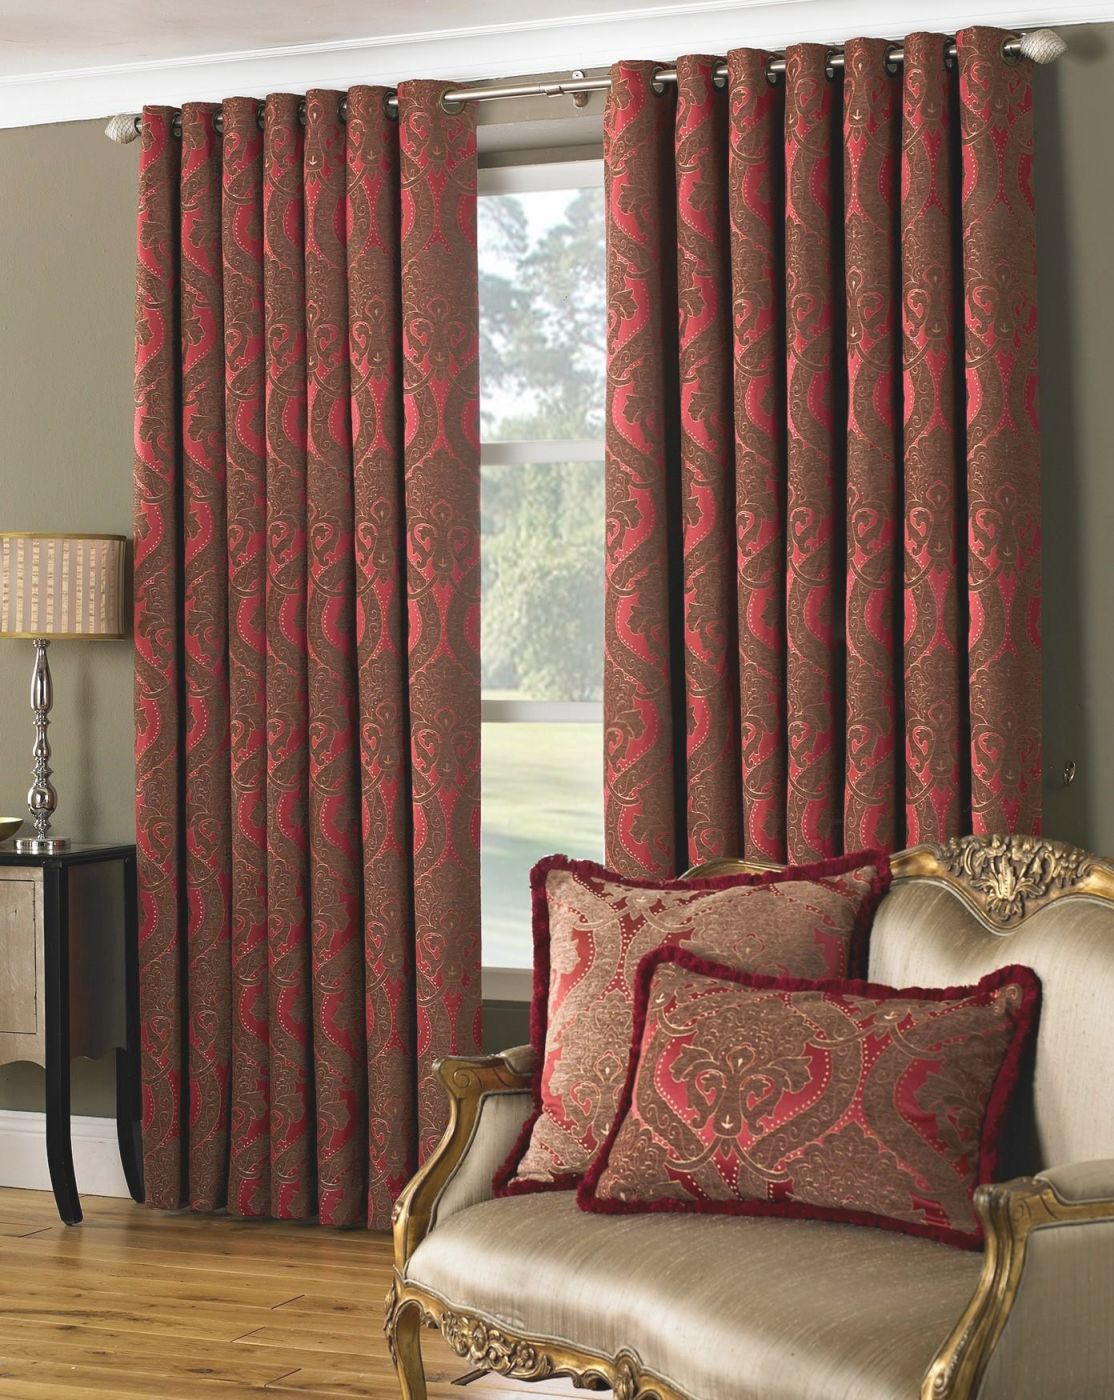 Burgundy Curtains Living Room Roy Home Design - Decoratorist for Burgundy Curtains For Living Room